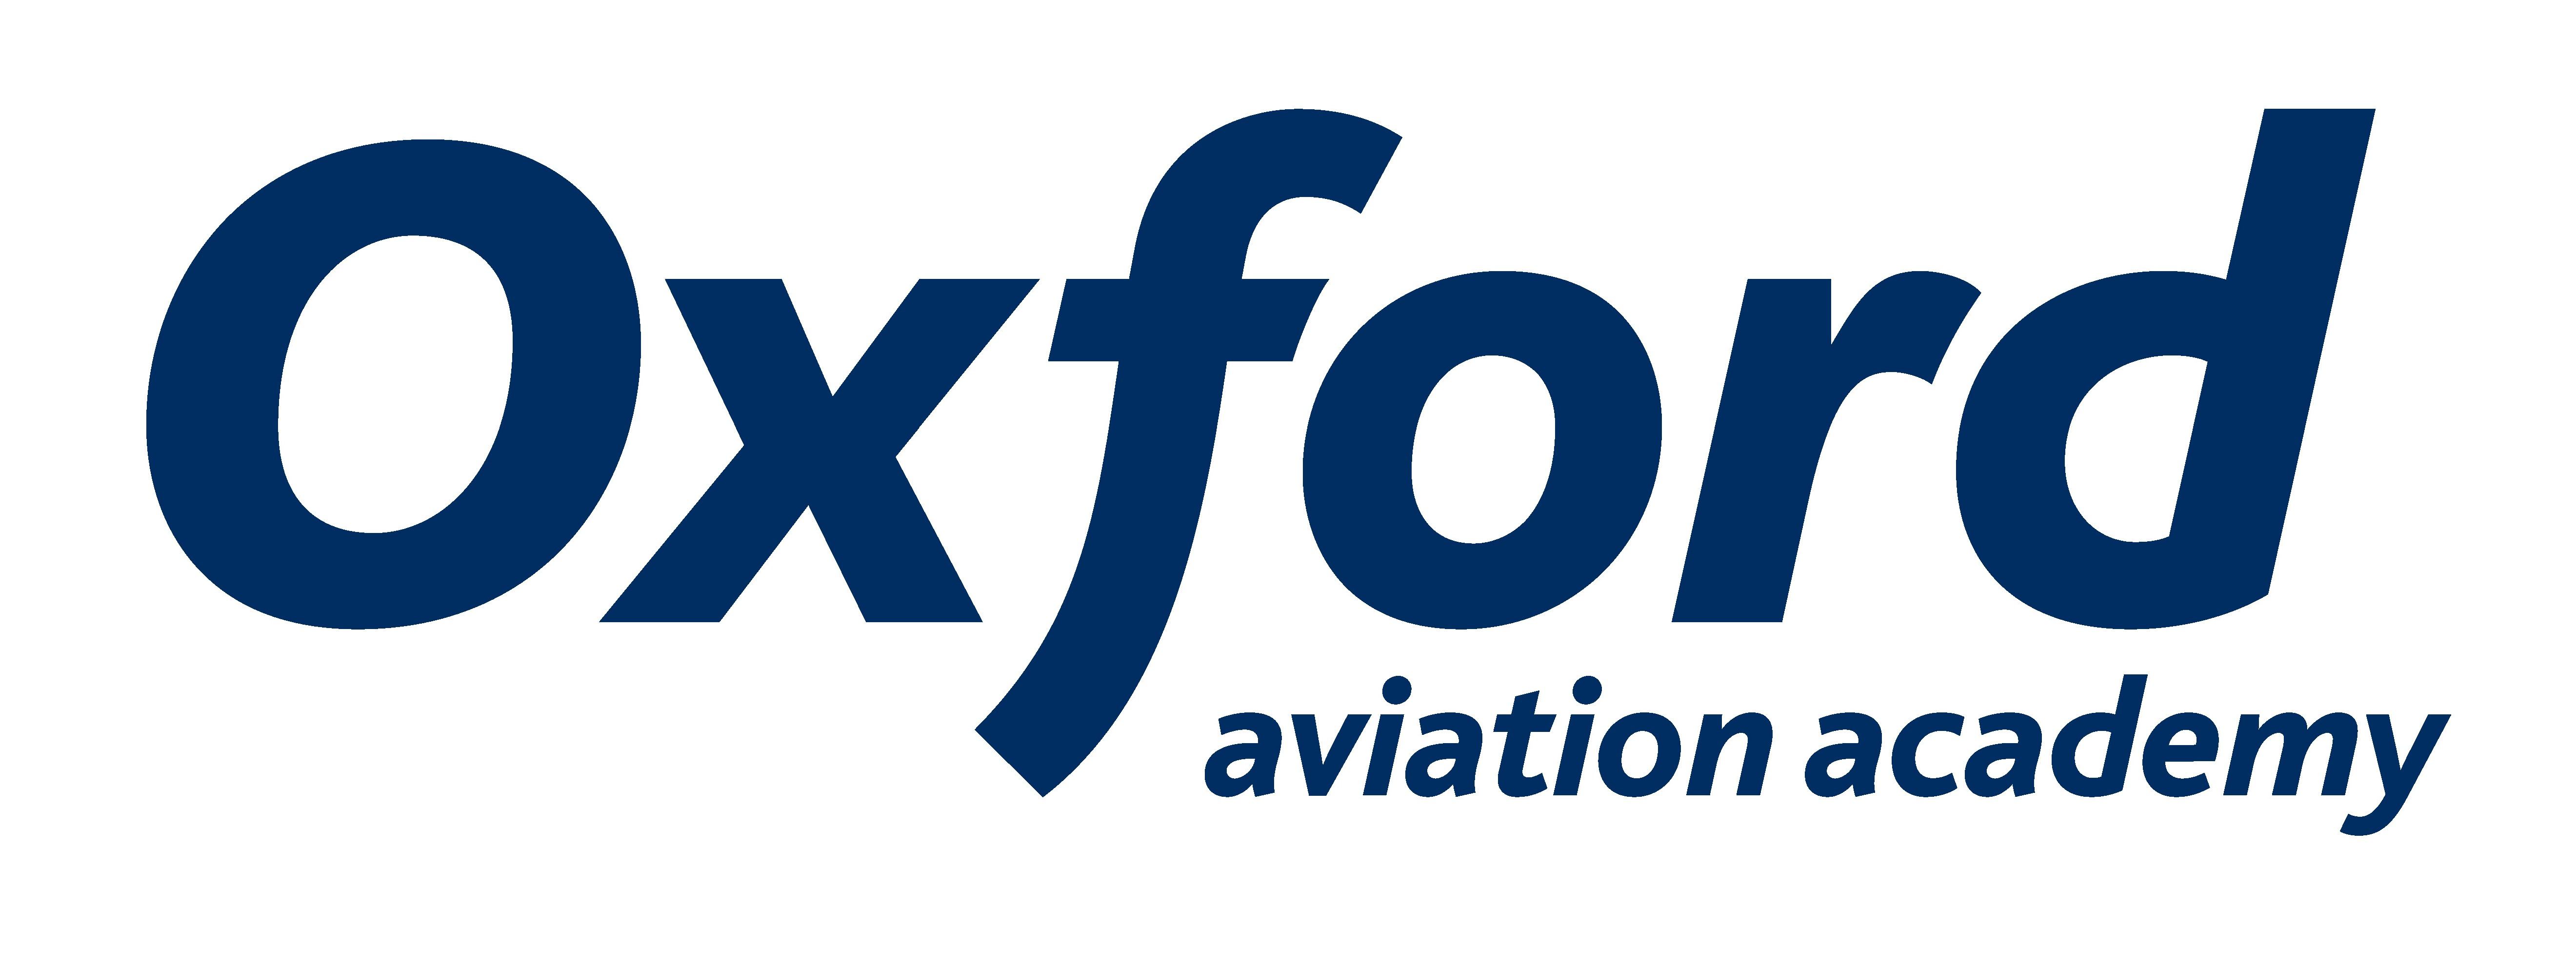 E%2fe1%2foxford aviation academy